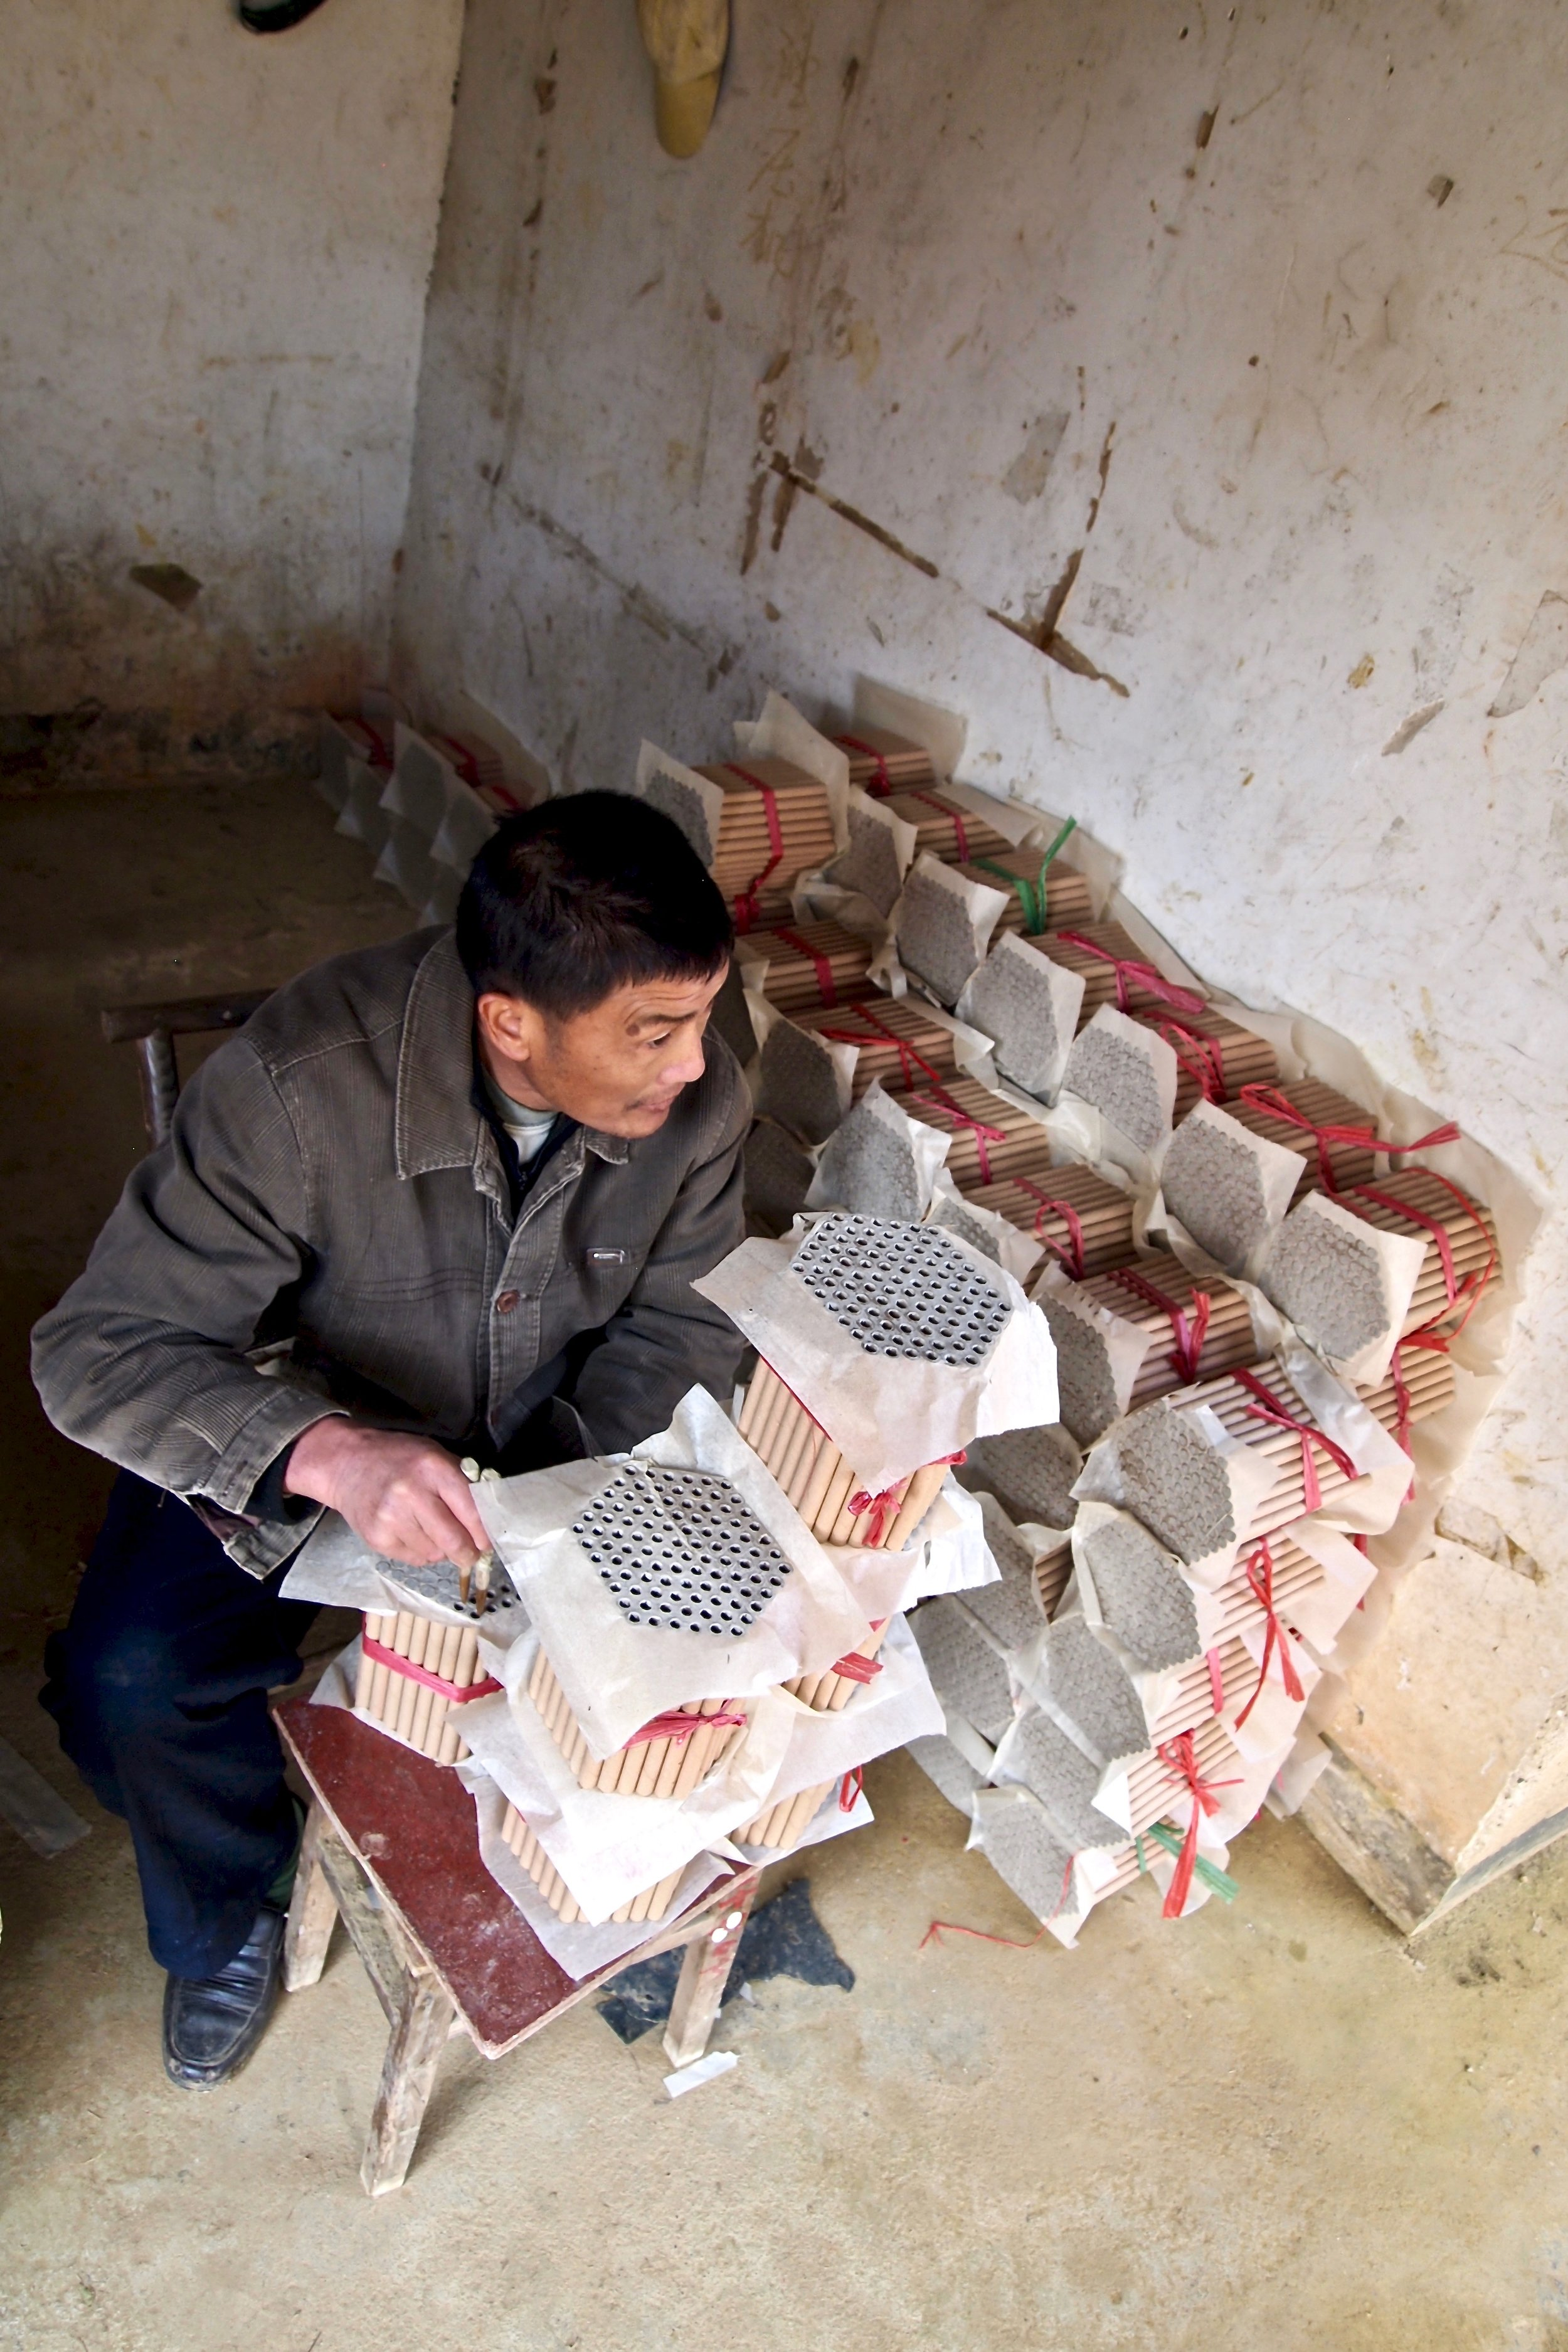 An employee of Dream Fireworks in Liuyang, China measuring powdered dynamite. Photo: (C) Remko Tanis